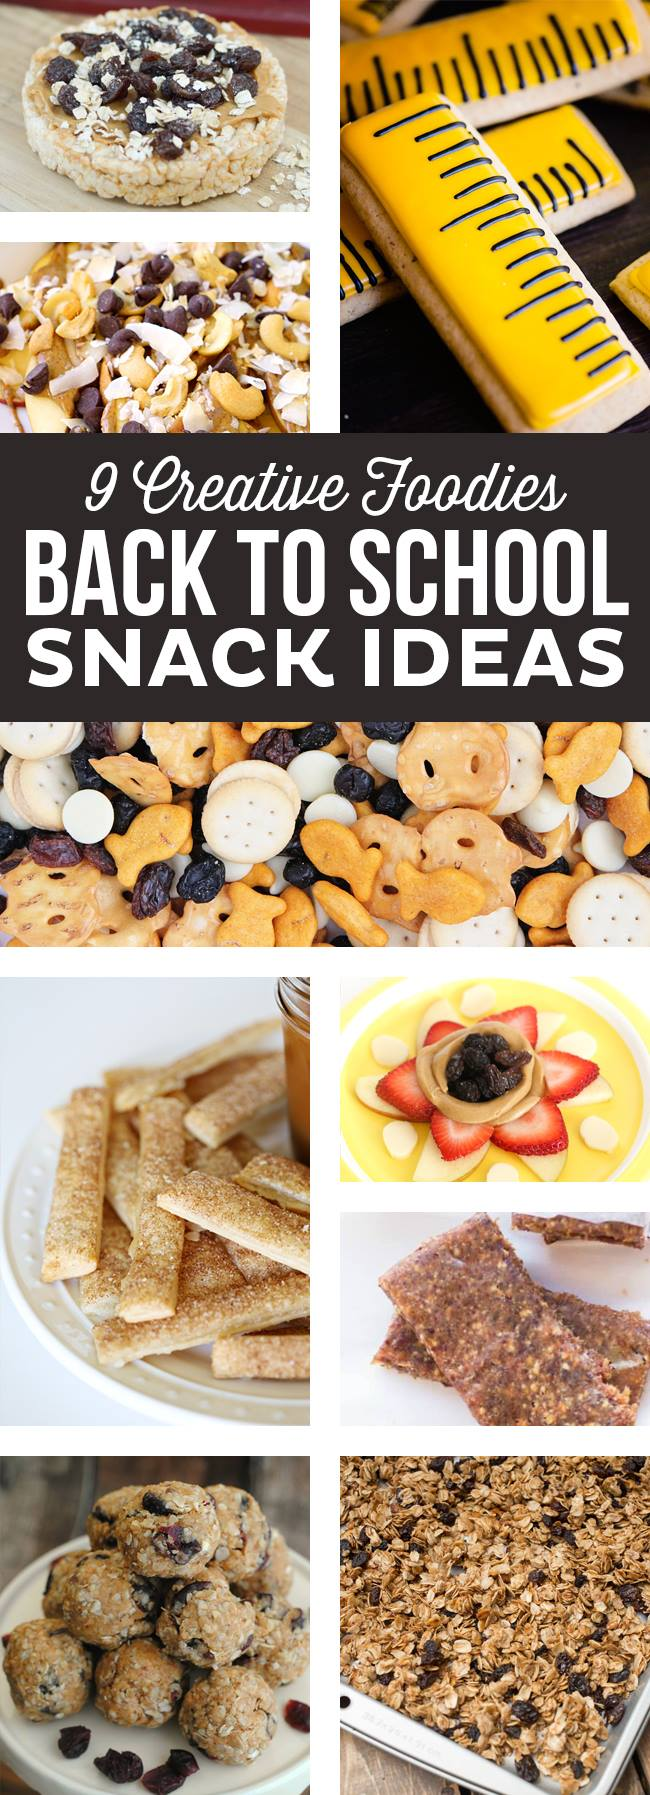 So many great Back to School snack ideas - perfect for lunchboxes and after school snacks!